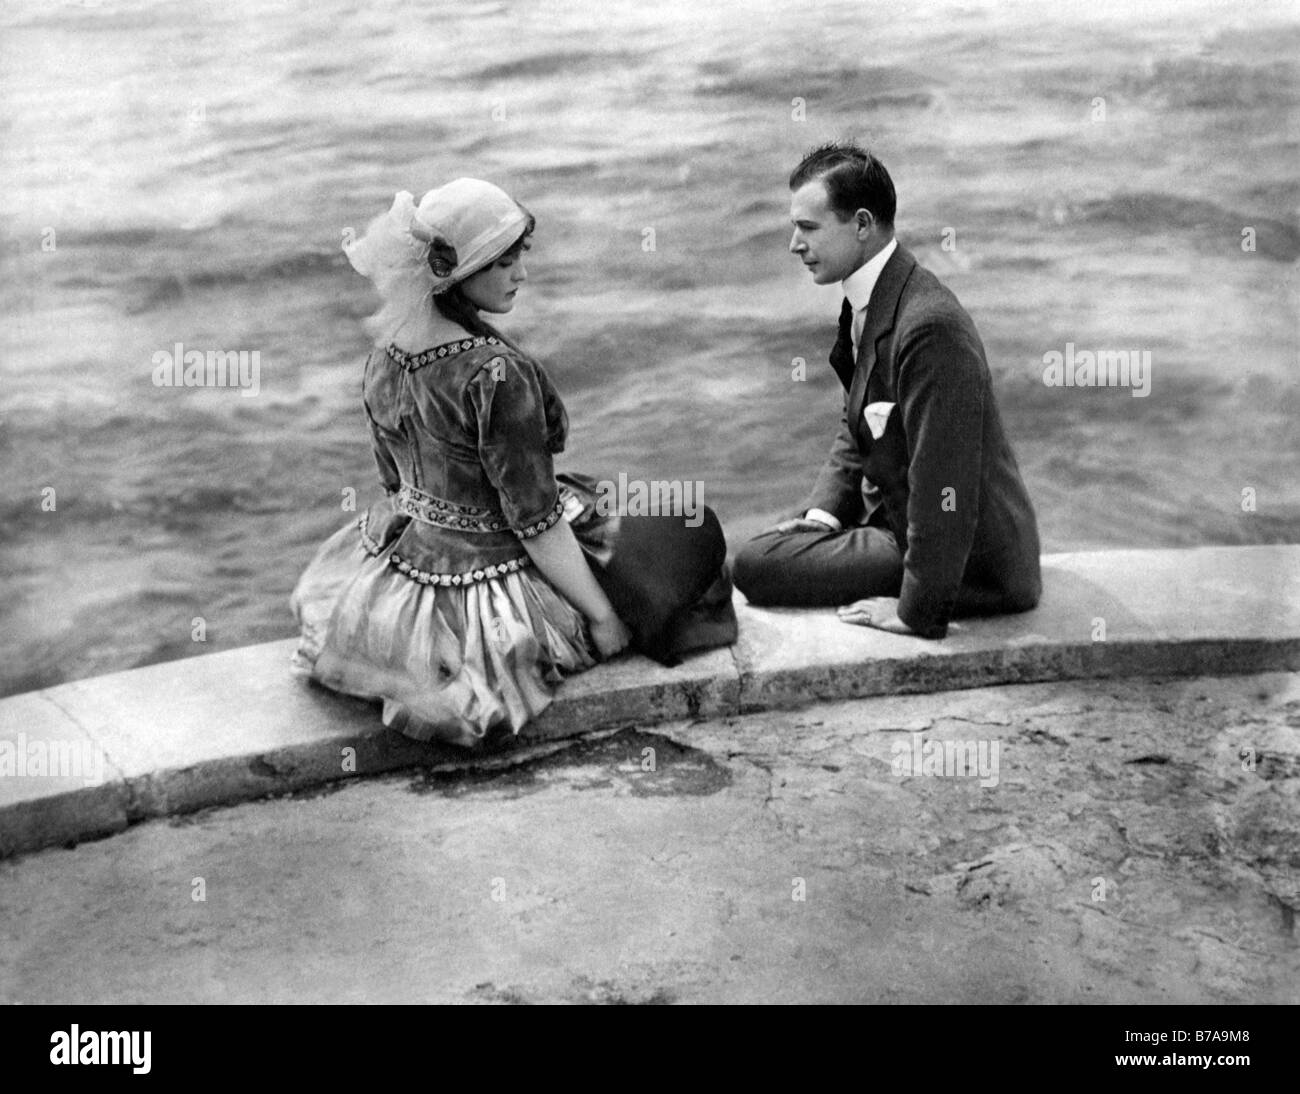 Historic photo, couple discussing by the river, ca. 1930 - Stock Image